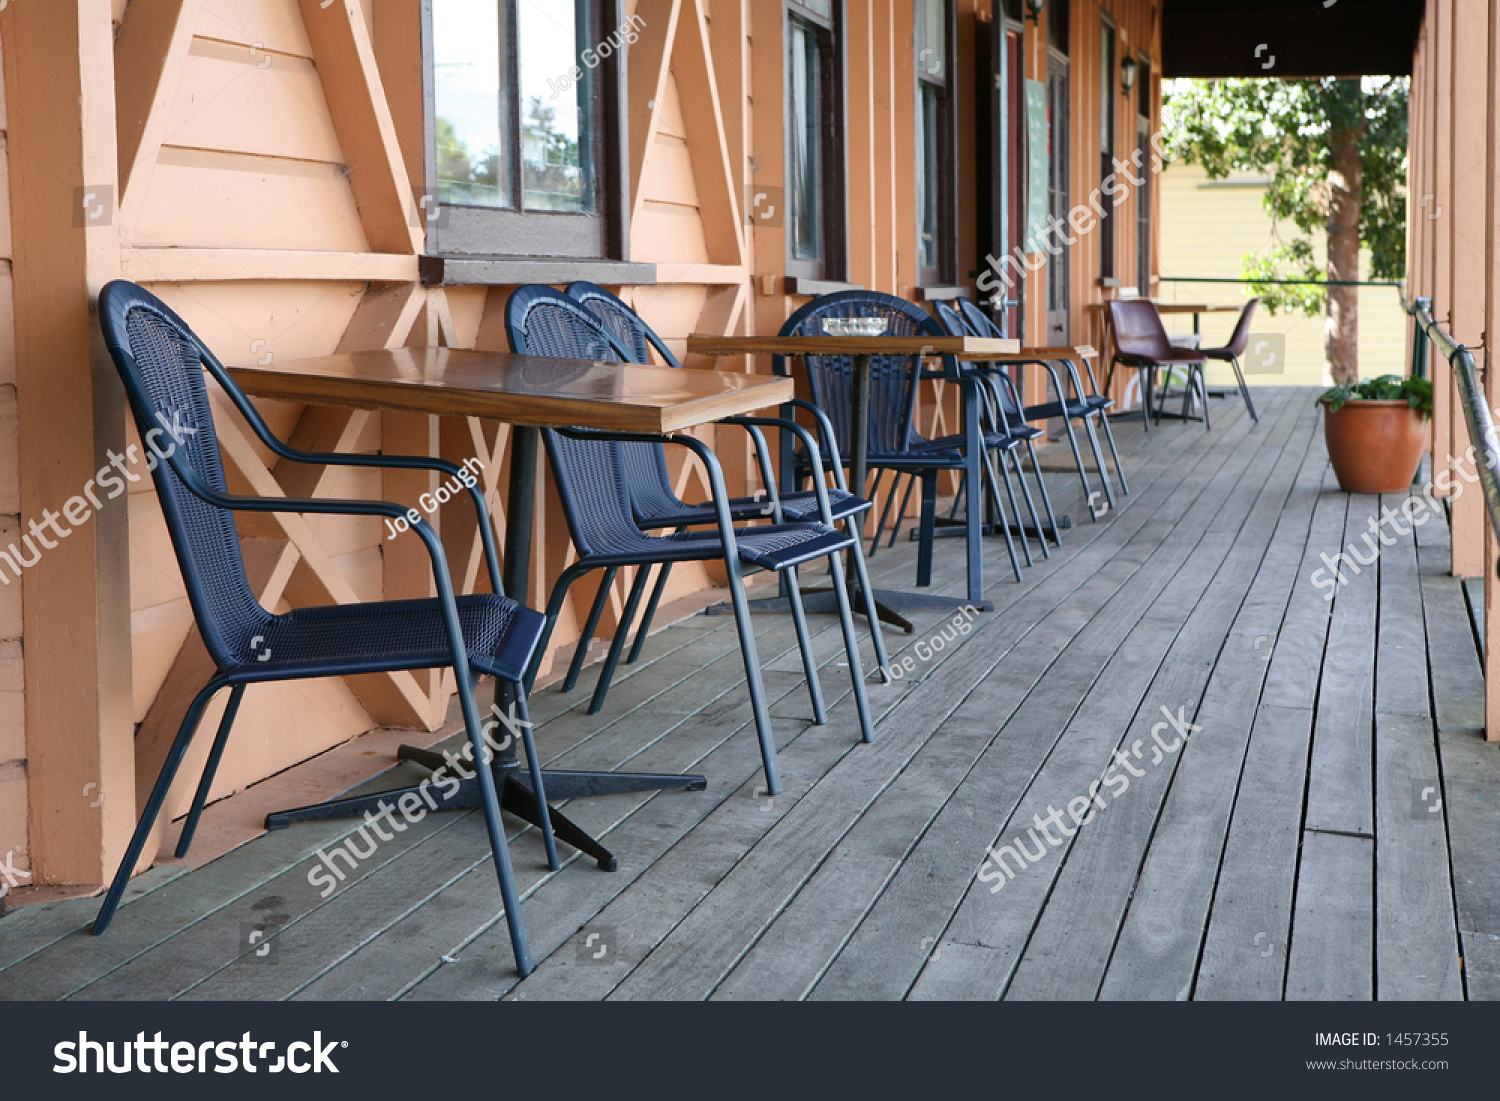 retro bar veranda stock photo 1457355 shutterstock. Black Bedroom Furniture Sets. Home Design Ideas